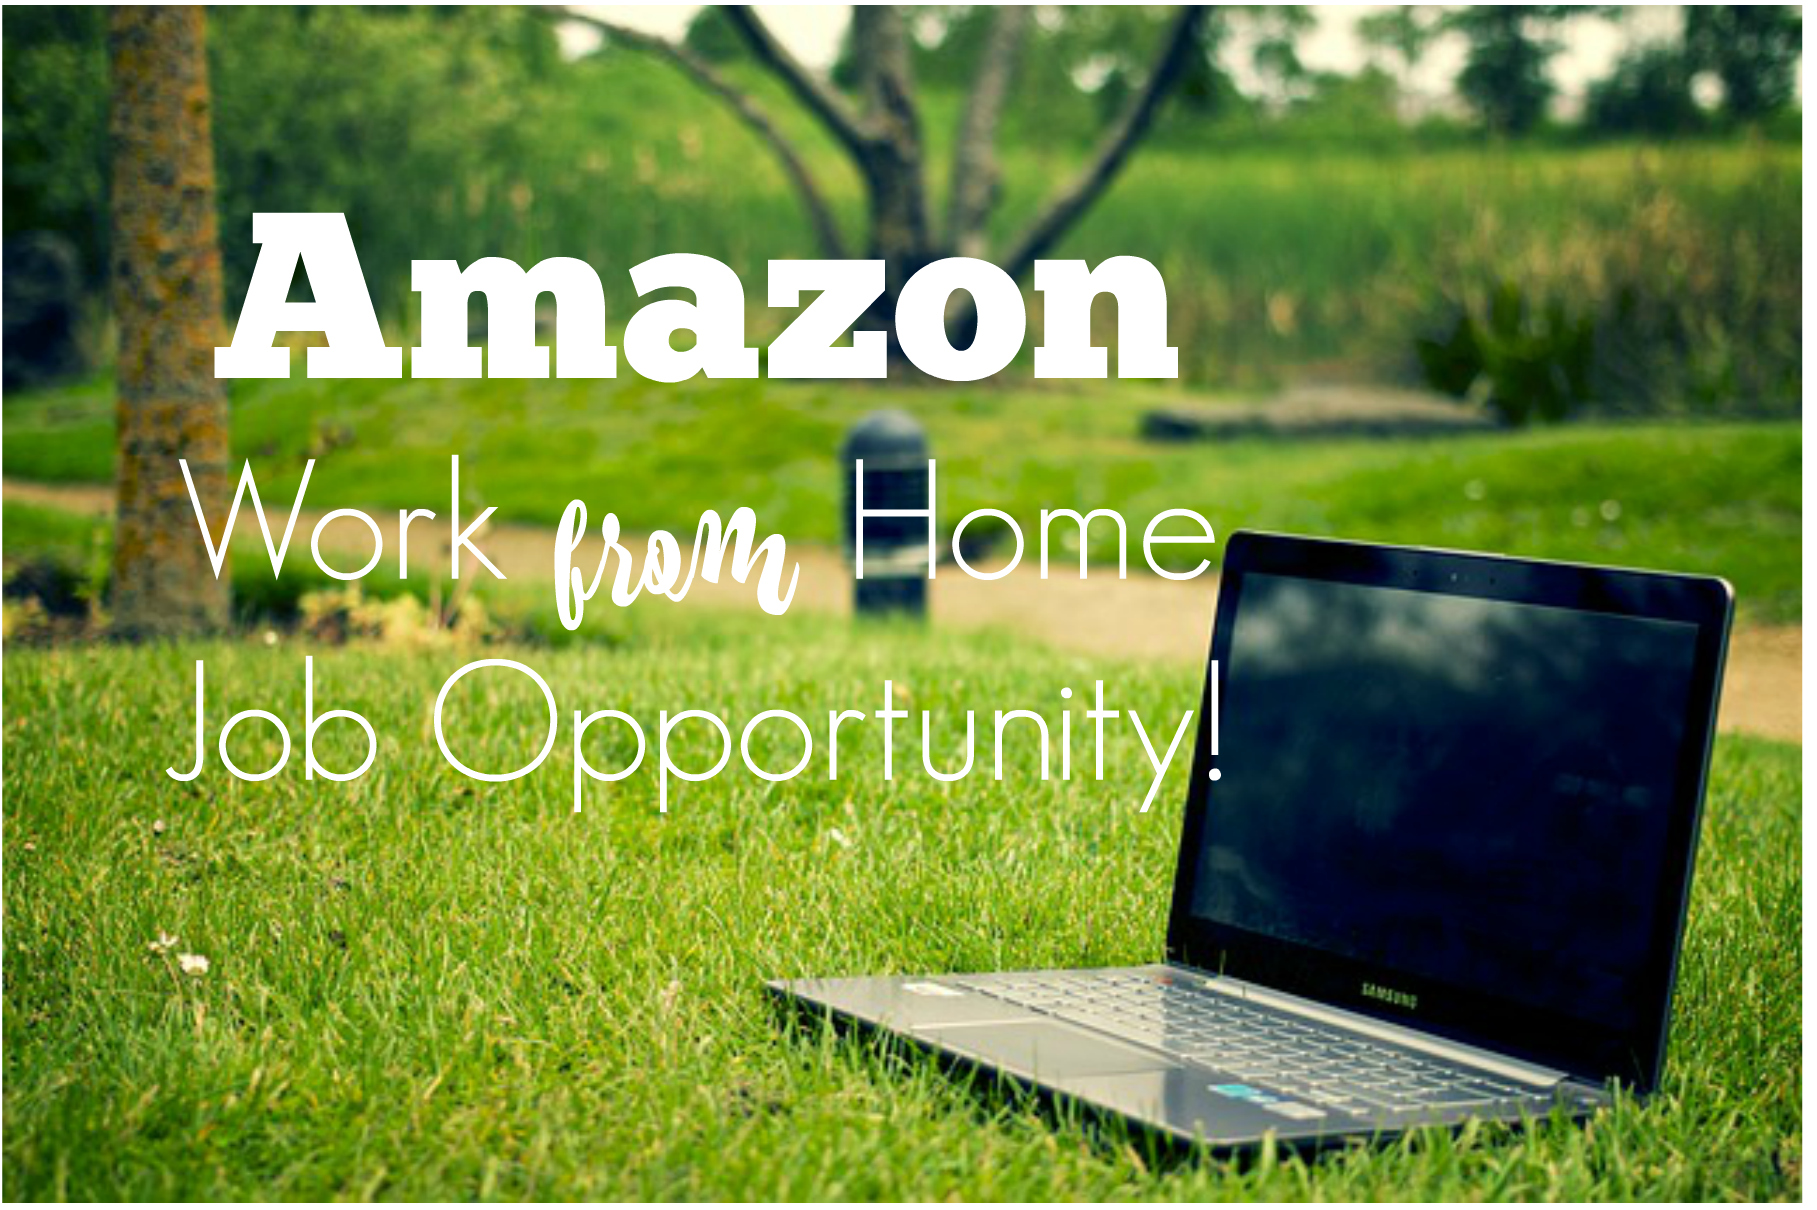 amazon job openings work from home amazon work from home job opportunity southern savers 418